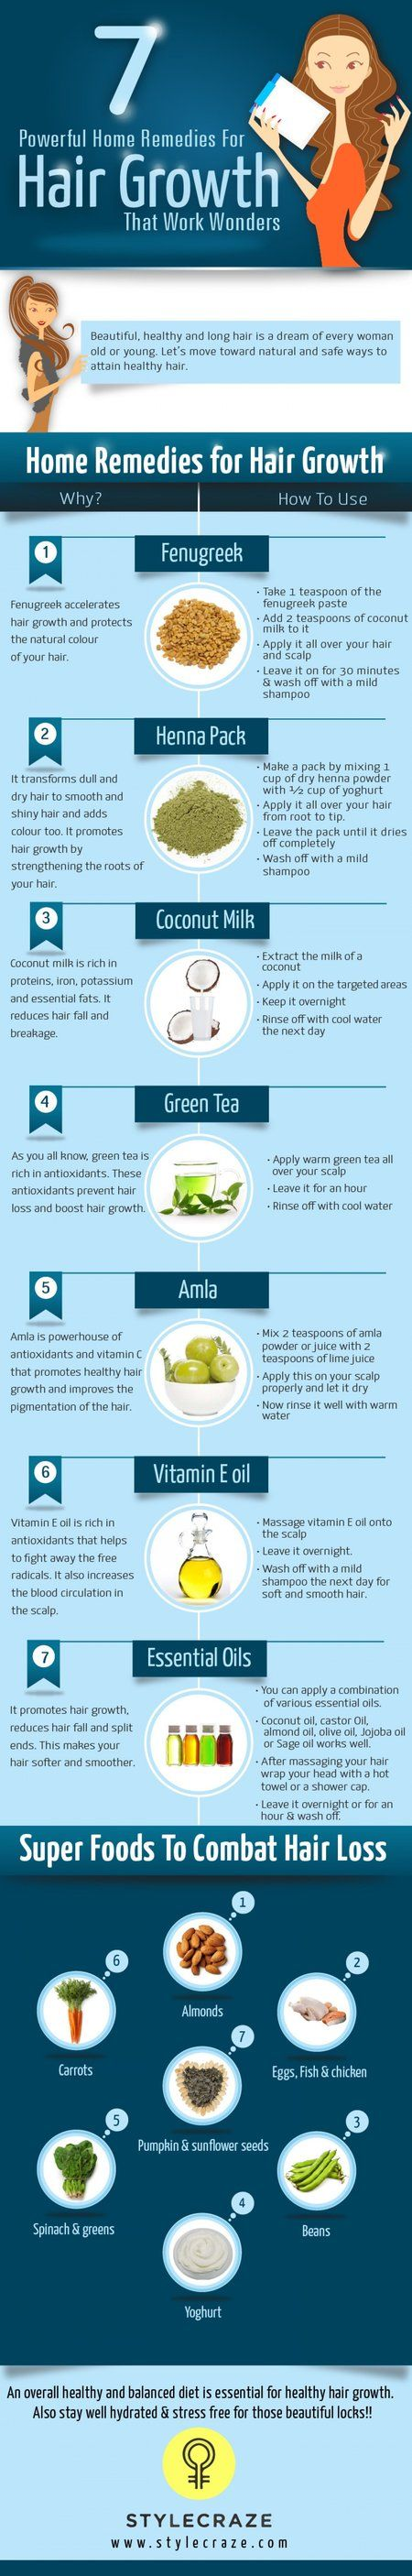 Here's How To Make Hair Grow Faster, Longer, Thicker-http://visual.ly/hair-growth-remedies